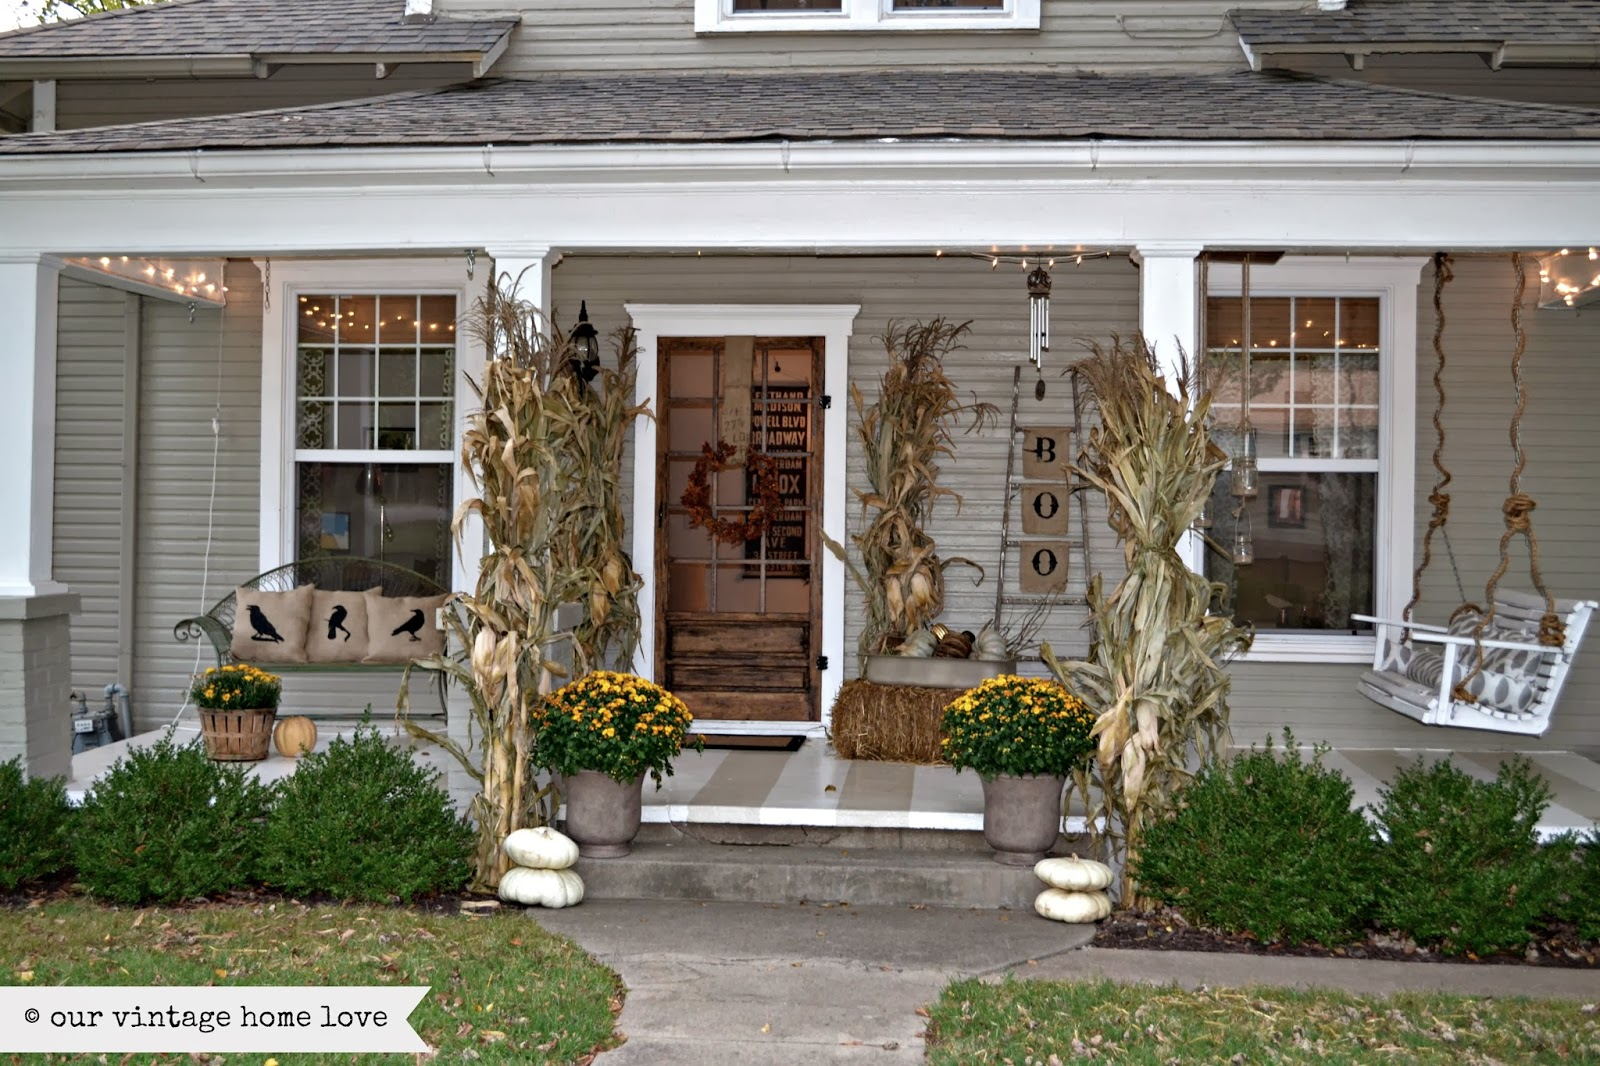 Vintage home love fall porch ideas Small front porch decorating ideas for fall